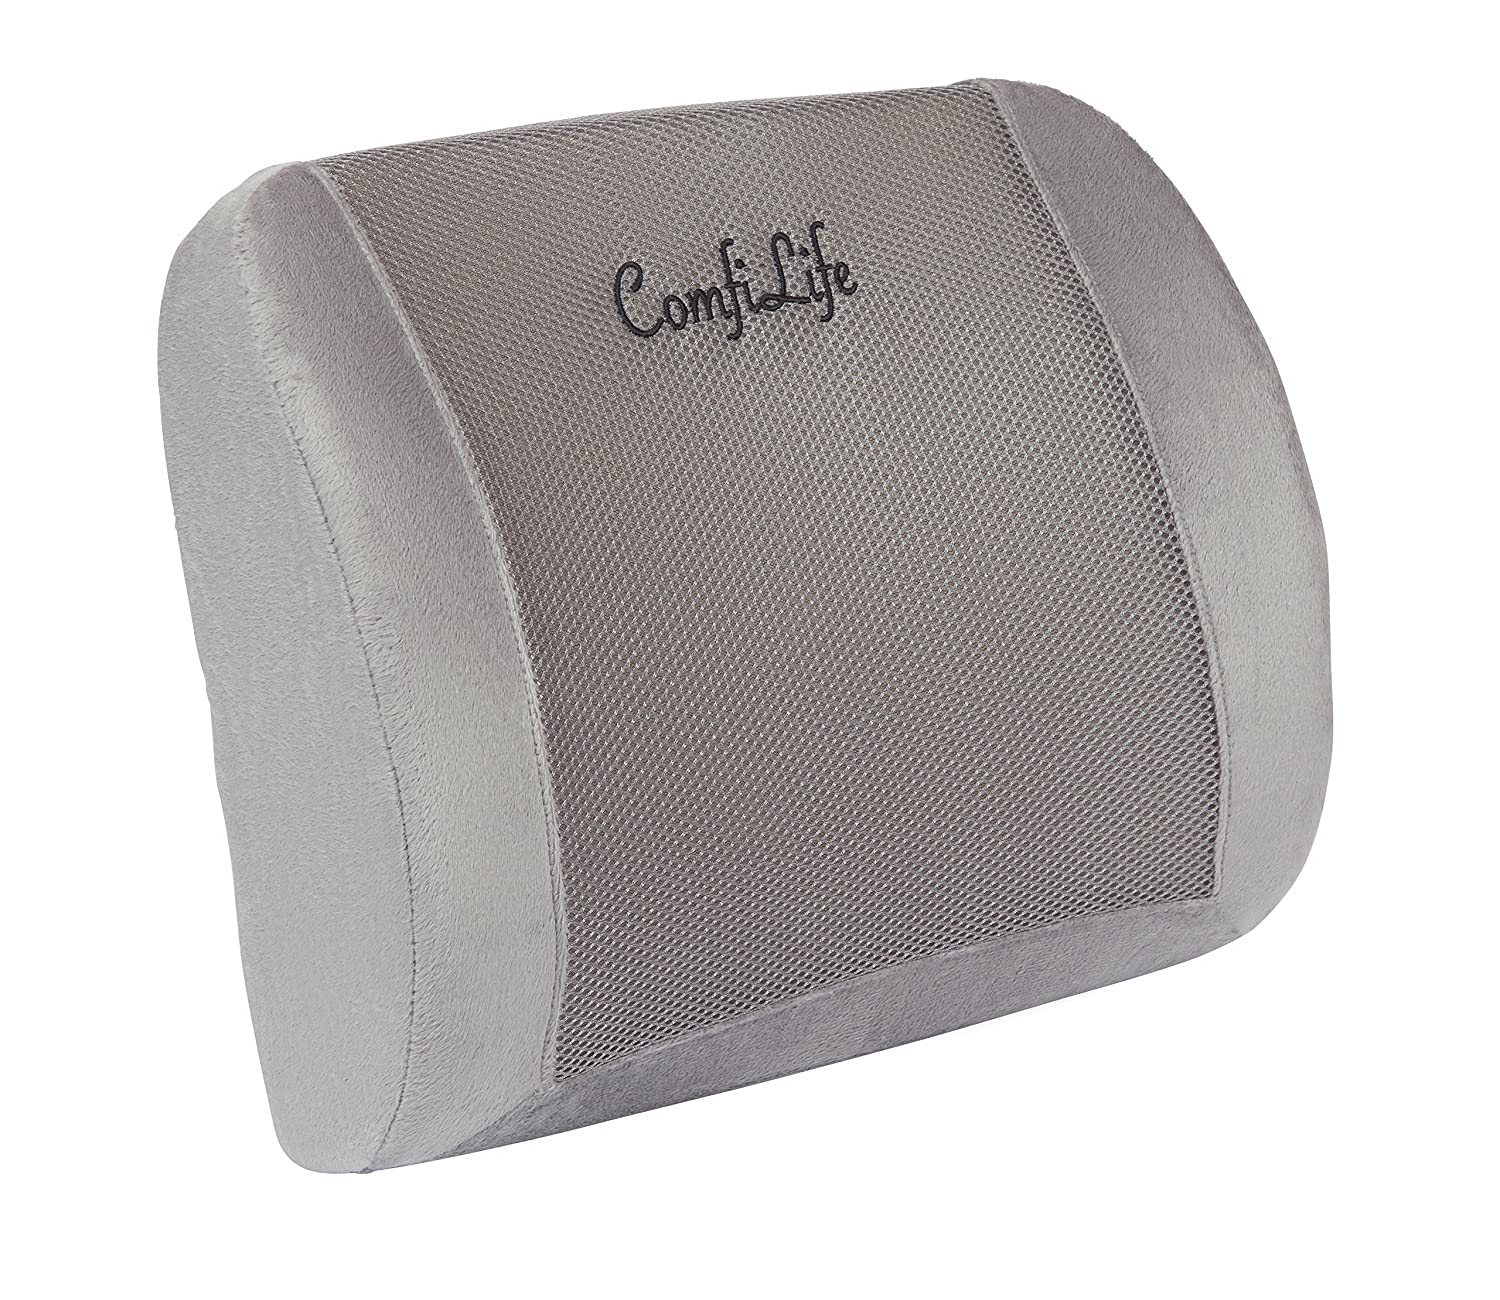 ComfiLife Memory Foam Orthopedic Back Support Lumbar Pillow with 3D Ventilative Mesh for Lower Back Pain and Posture Support. Great for Office Chair and Car Seat with Adjustable Strap, Gray